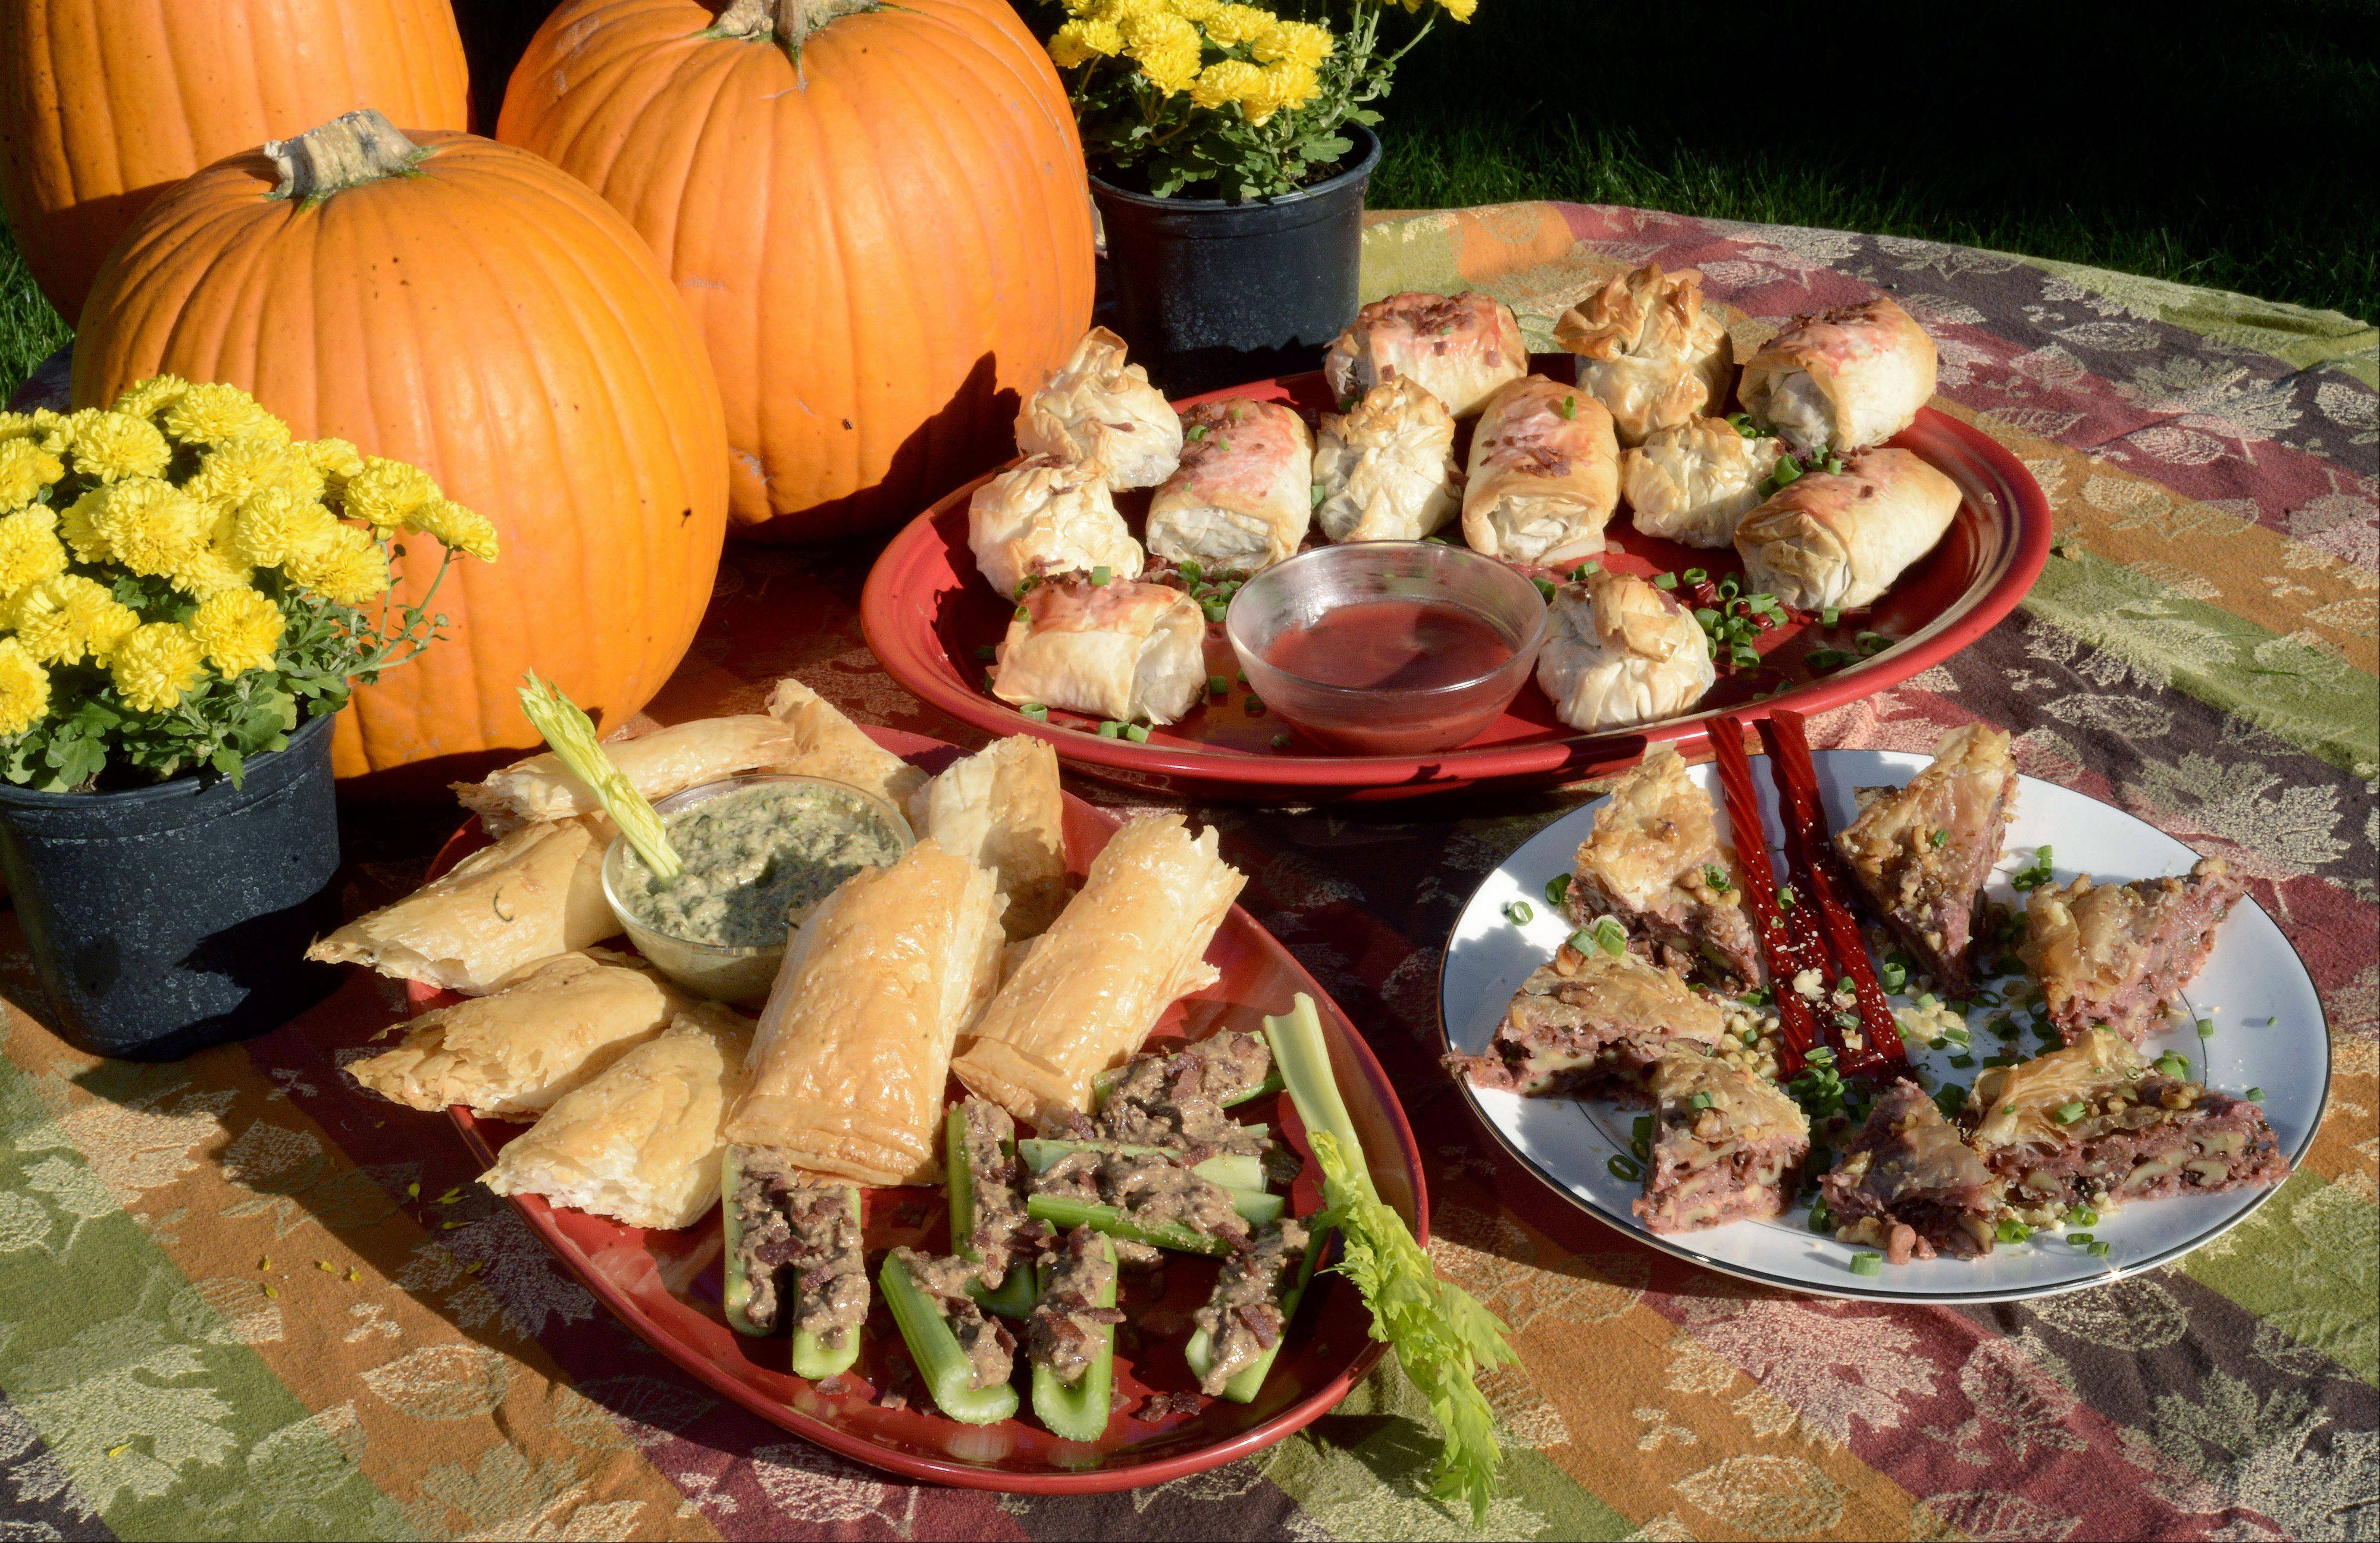 Dan Rich of Elgin used Twizzlers, almond butter, celery and phyllo sheets to create a spread of unique party foods.